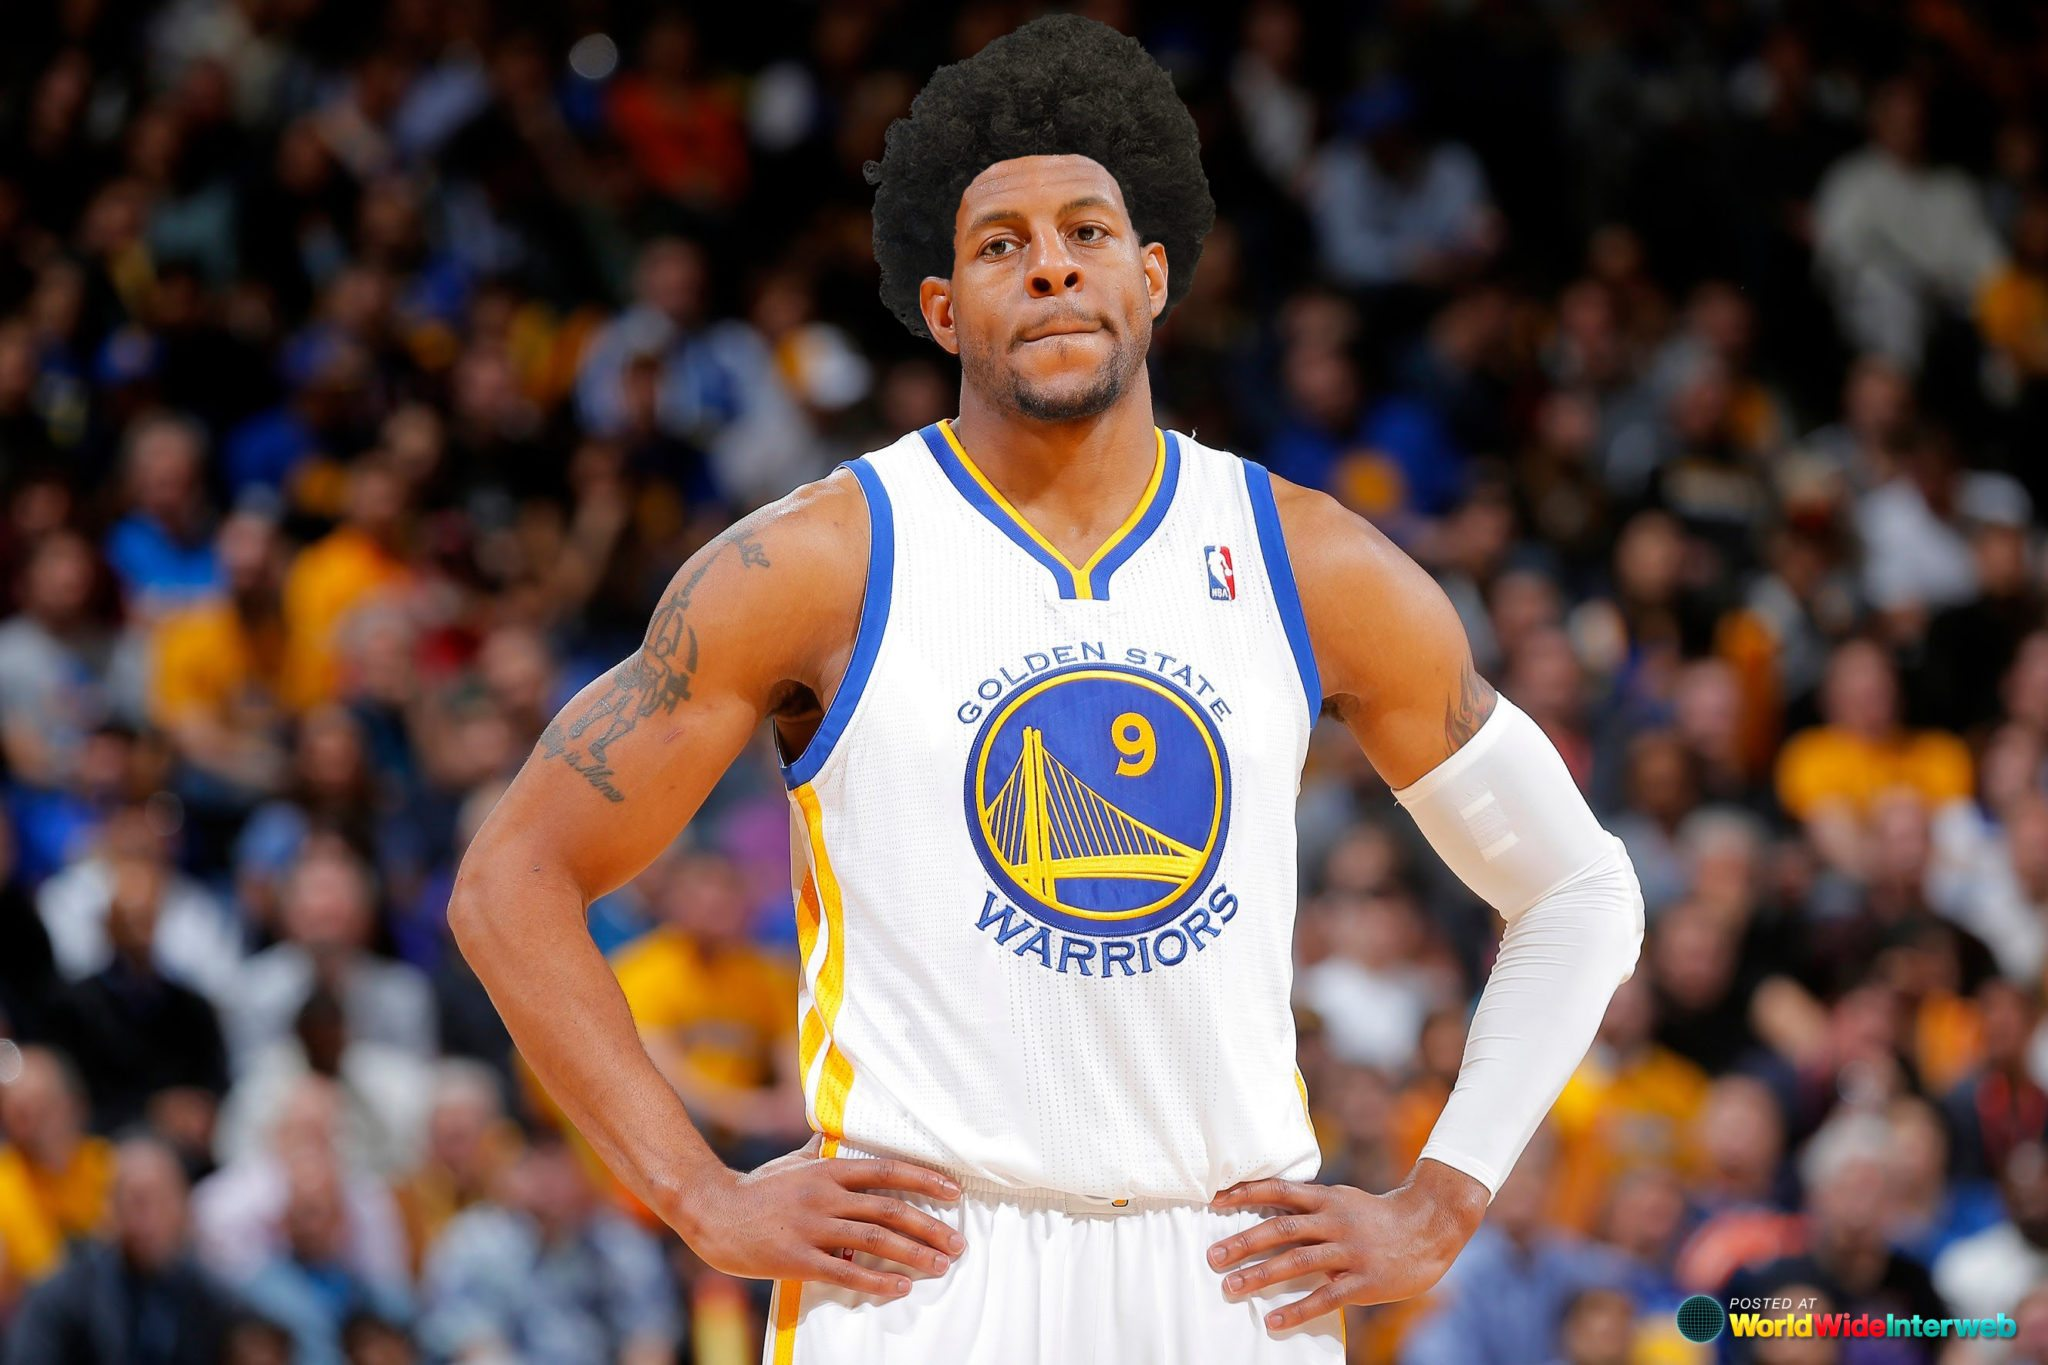 Basketball Players: What If Everyone In The NBA Conference Finals Had Afros